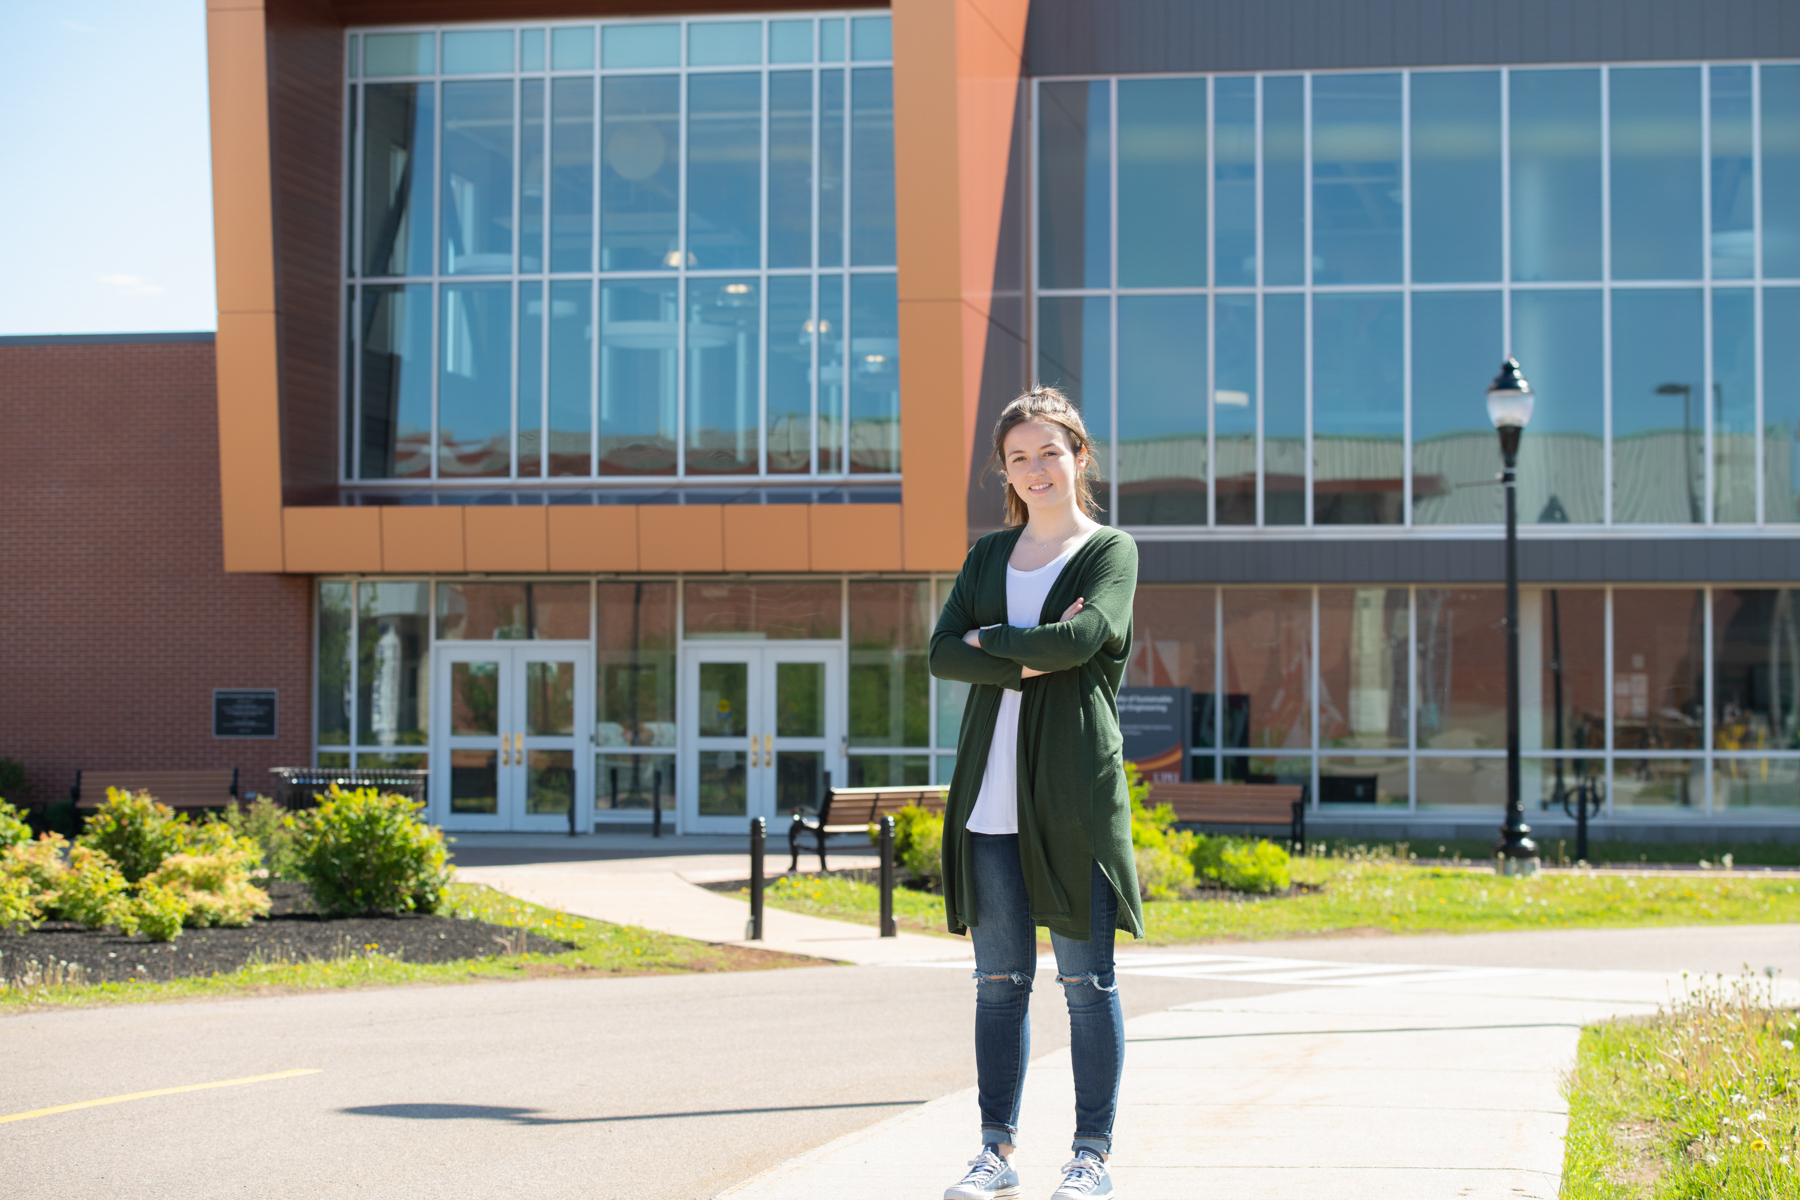 upei student sydney wheatley in front of the sustainable design engineering building